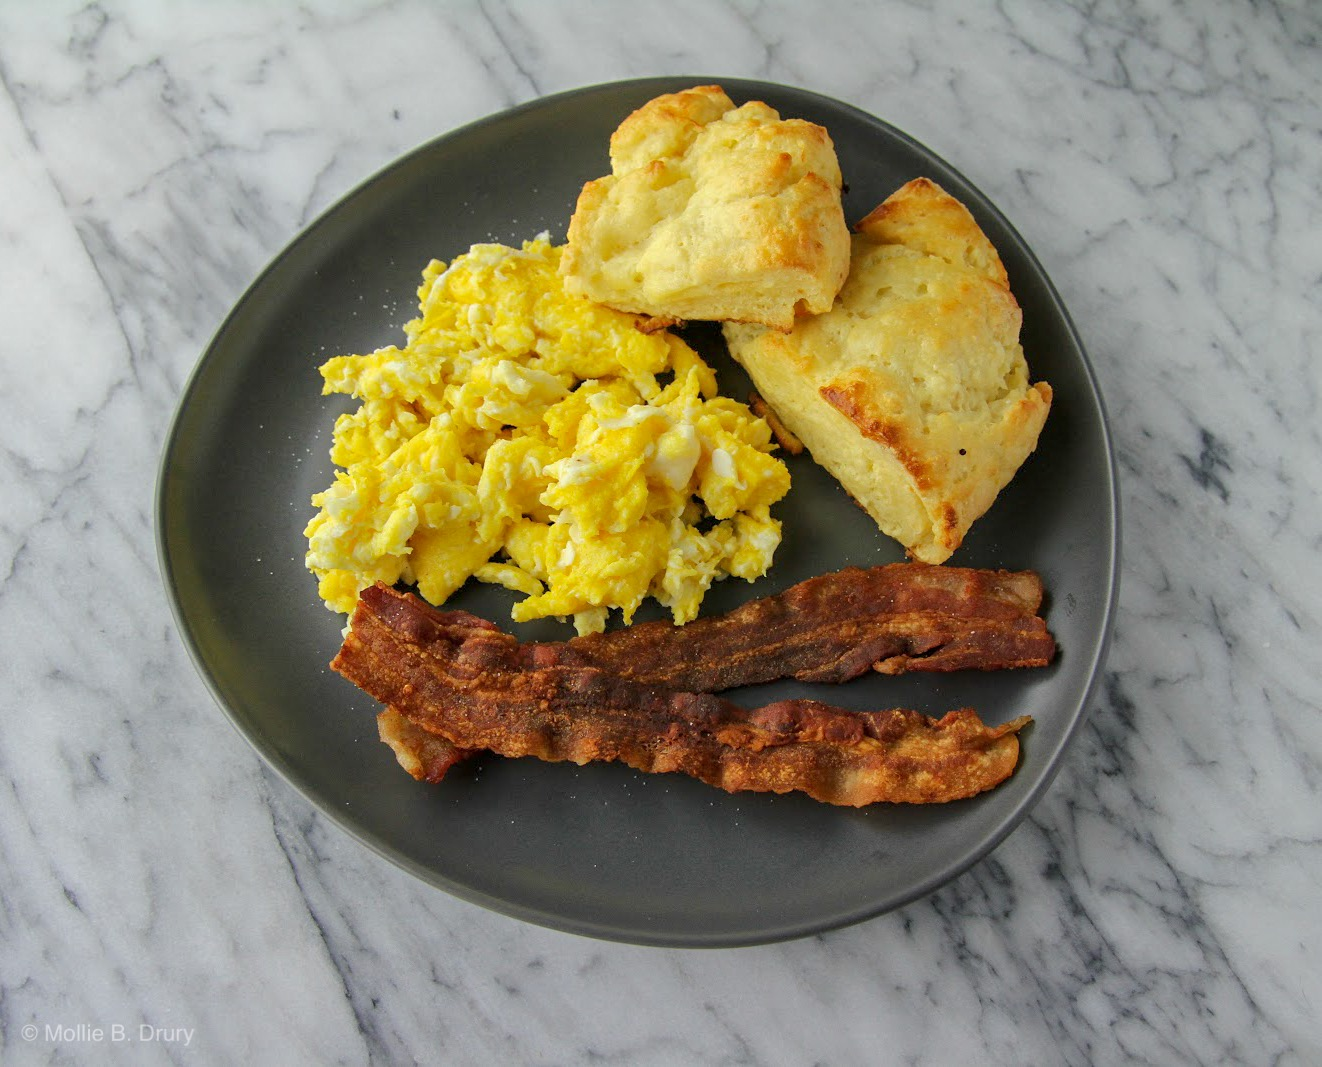 Fresh-made biscuits, bacon, and eggs. The ultimate breakfast.